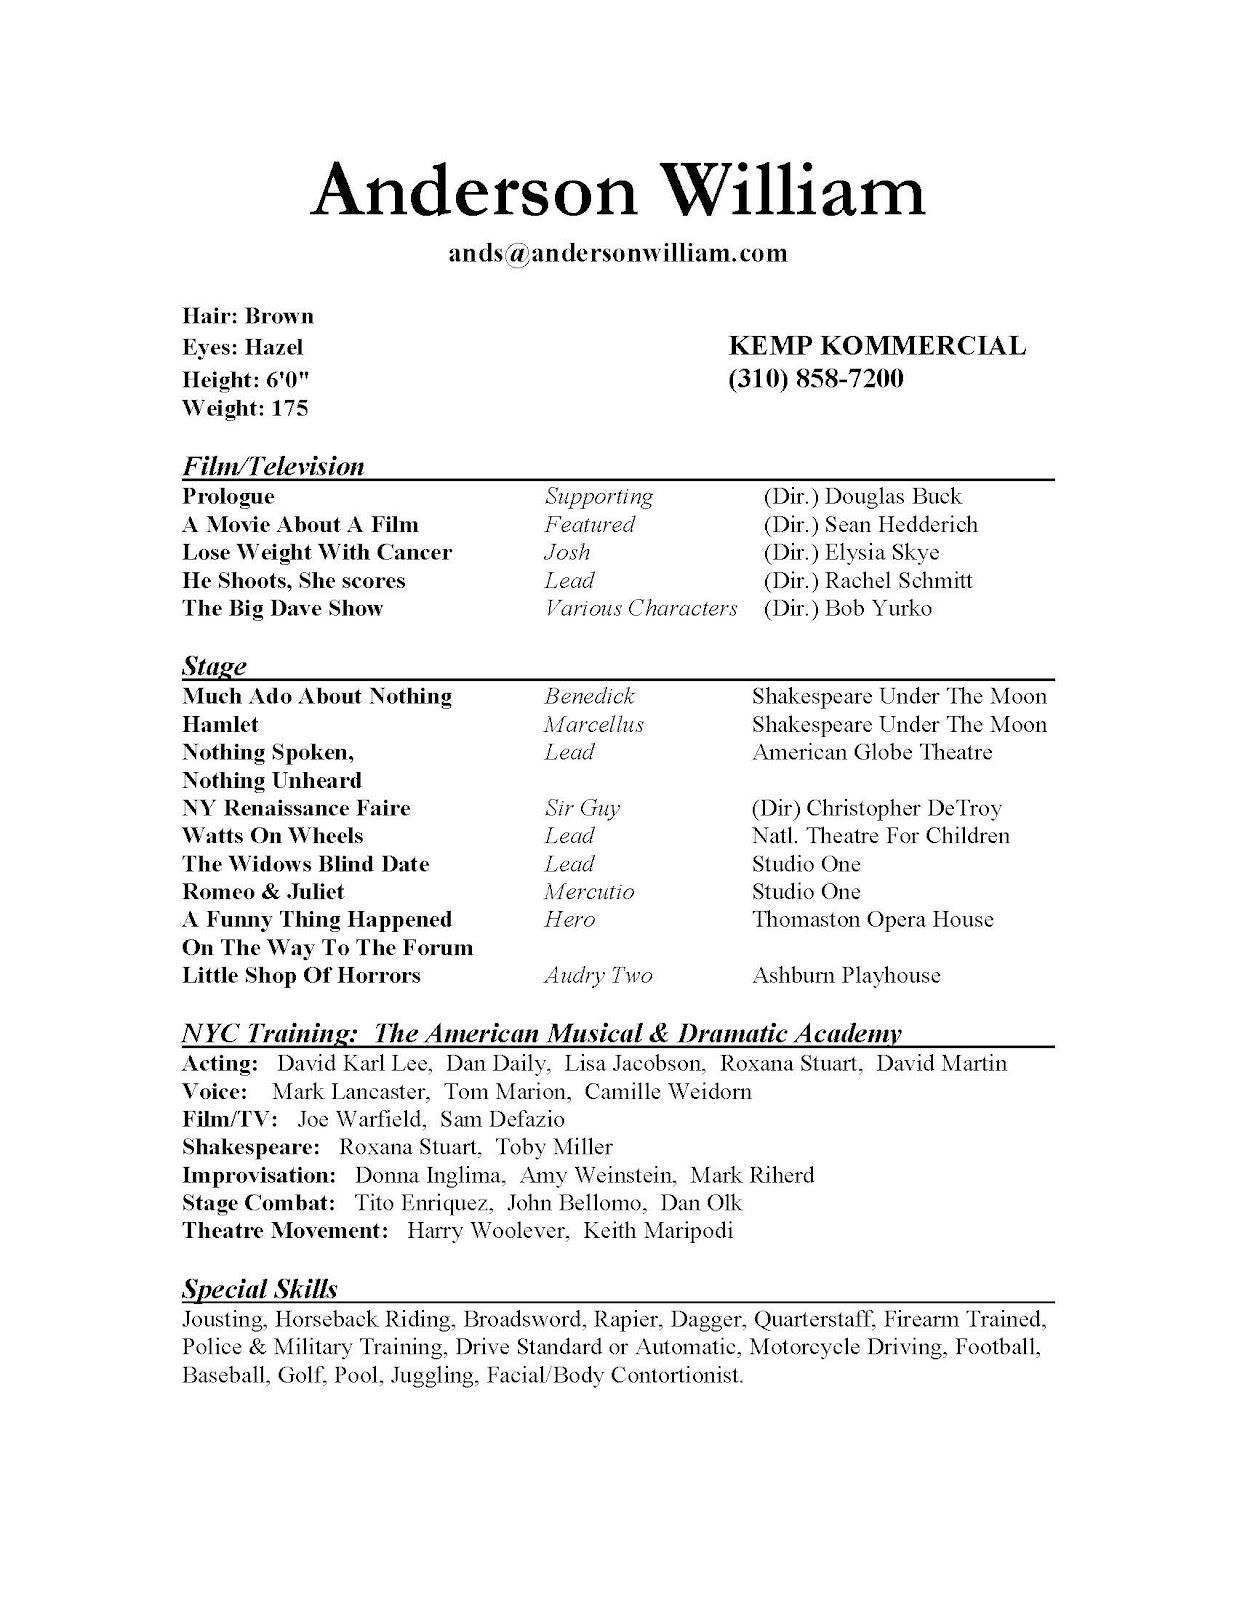 Awesome Perfect Mining Resume Perfect Mining Resume Resume Pdf Download Now A Few  Theatre Resume Samples Idea